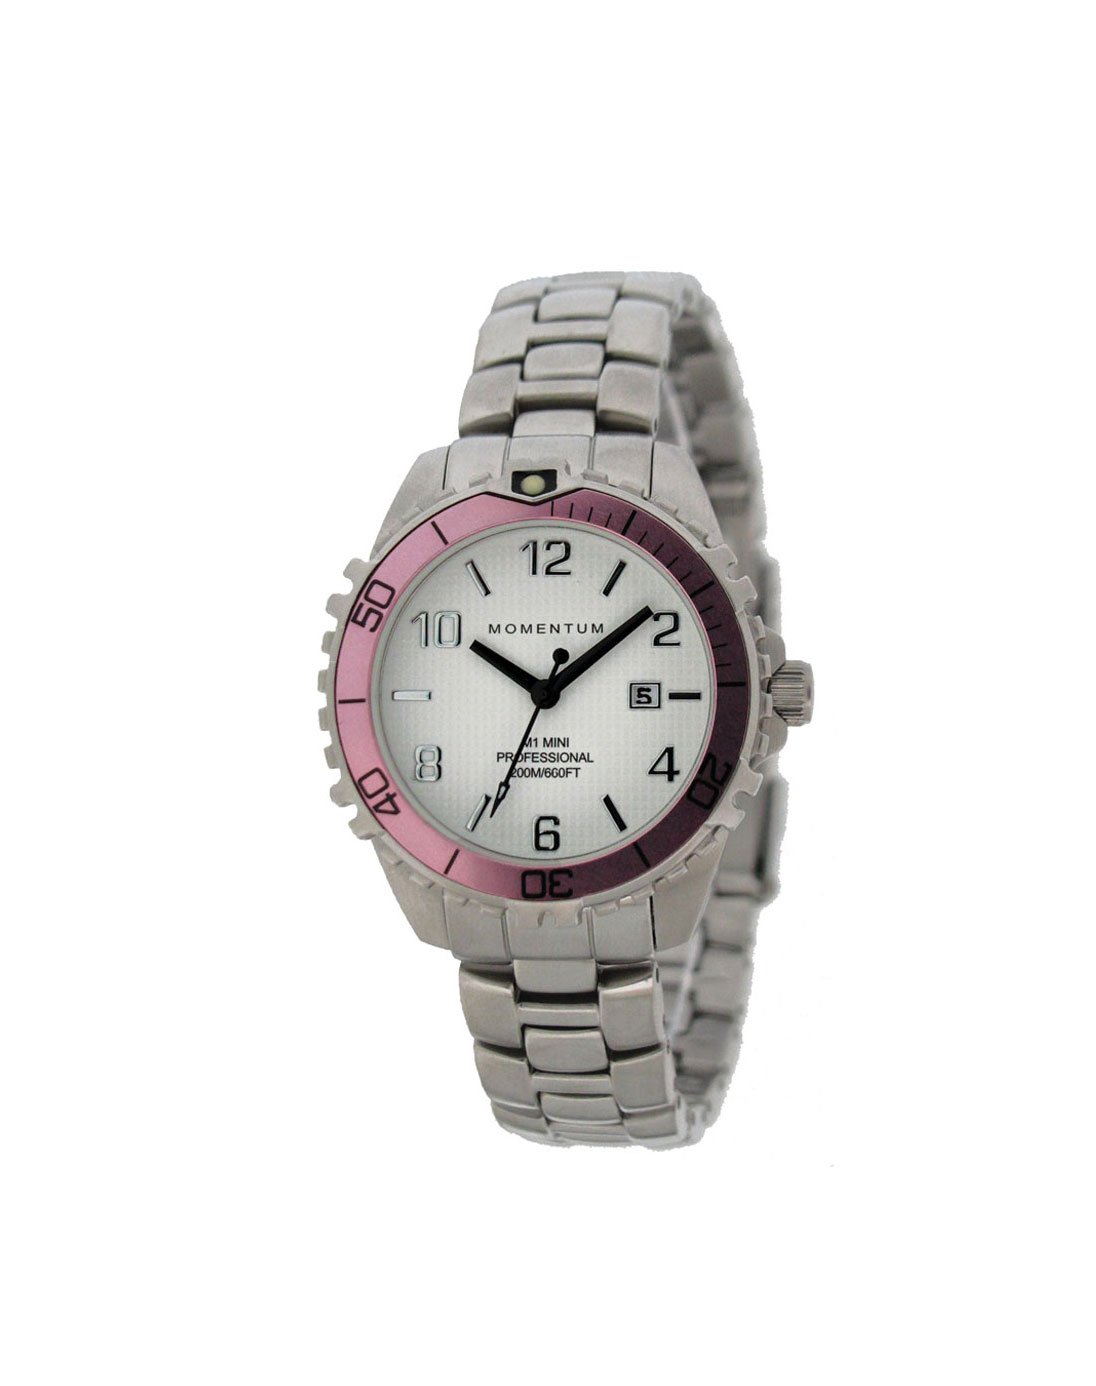 MOMENTUM Watch - M1 Mini Steel with Pink Face